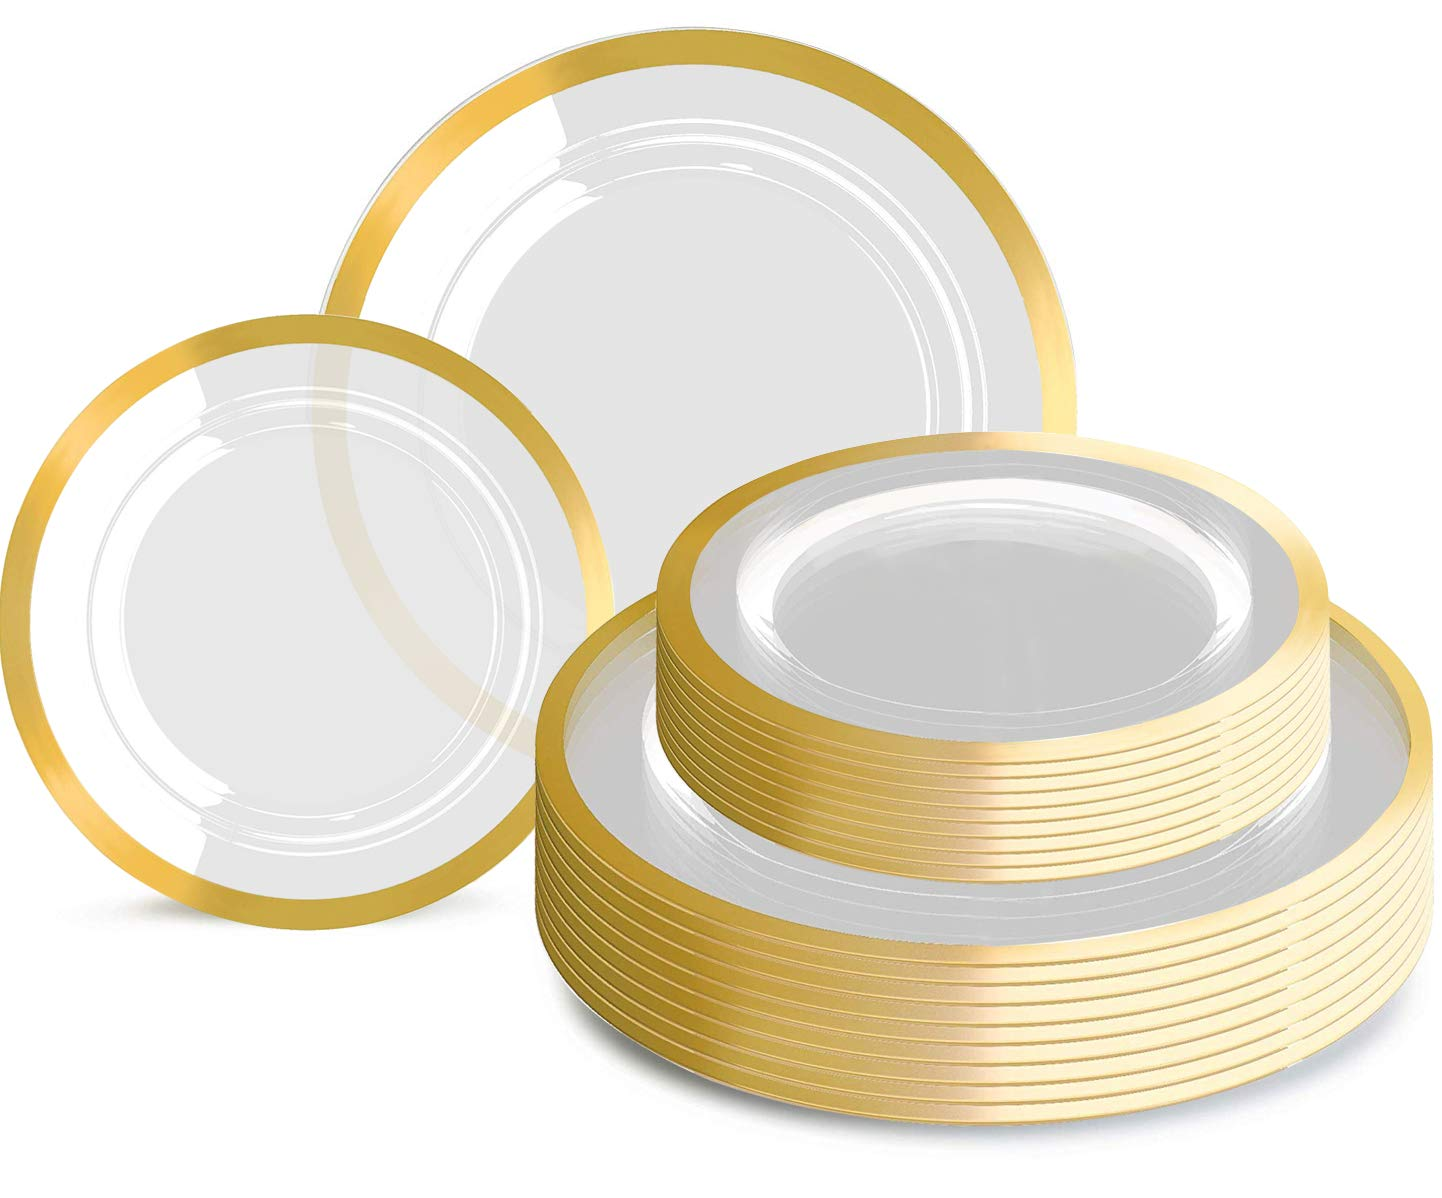 120pcs Plastic Gold plates Clear Plastic Plates with Unique Design Disposable Plates Heavy Duty Includes: 60 Durable Dinner Plates 10.25'' and 60 Dessert Plates 7.5'', Supernal by supernal